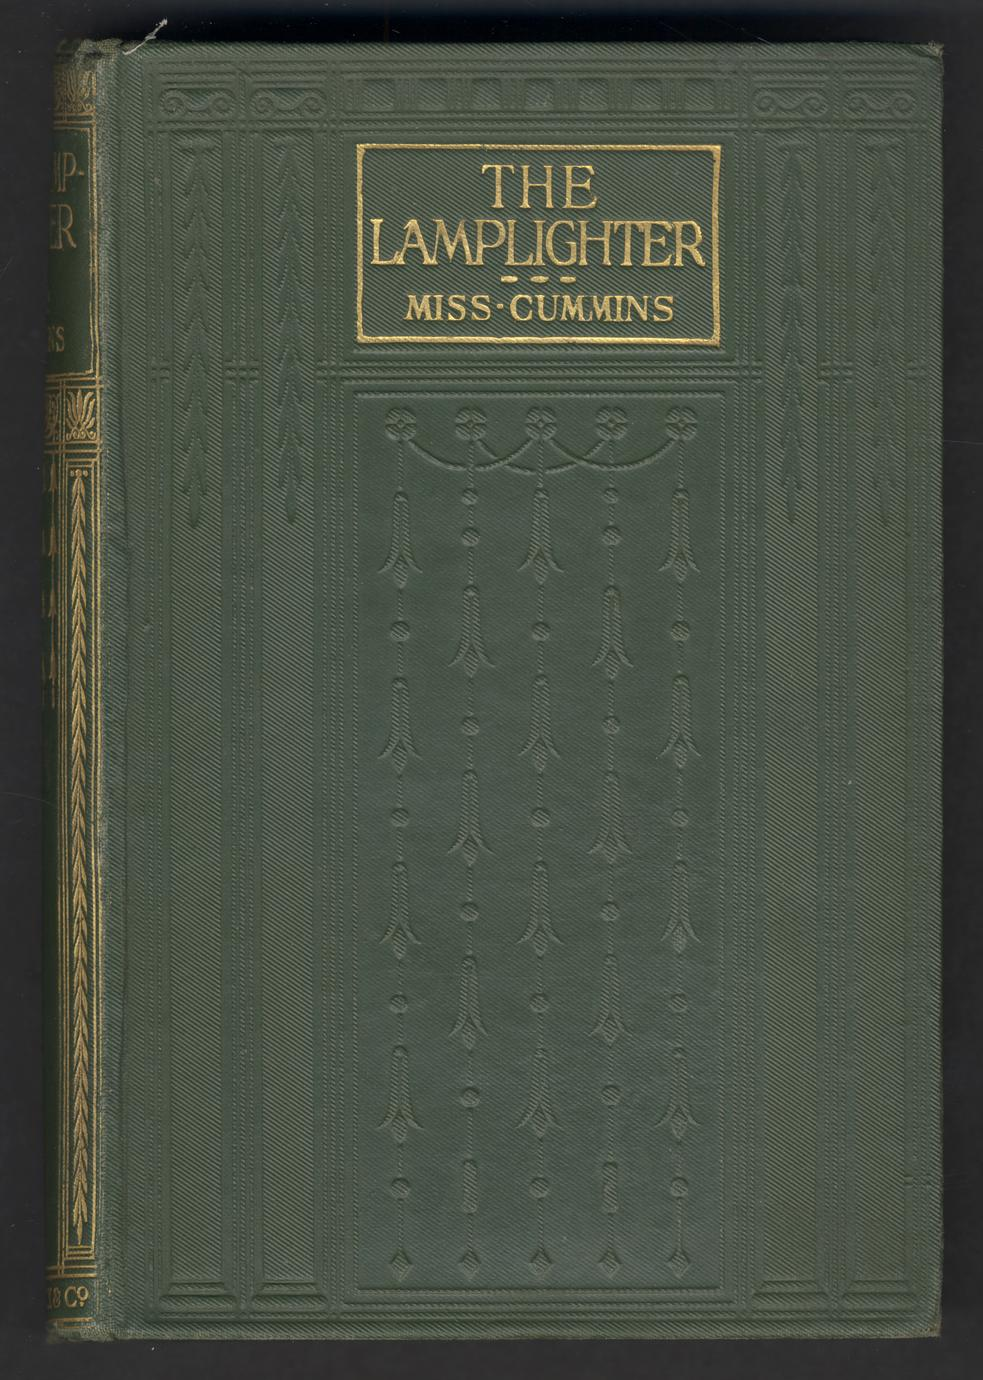 The lamplighter; or, An orphan girl's struggles and triumphs (1 of 2)